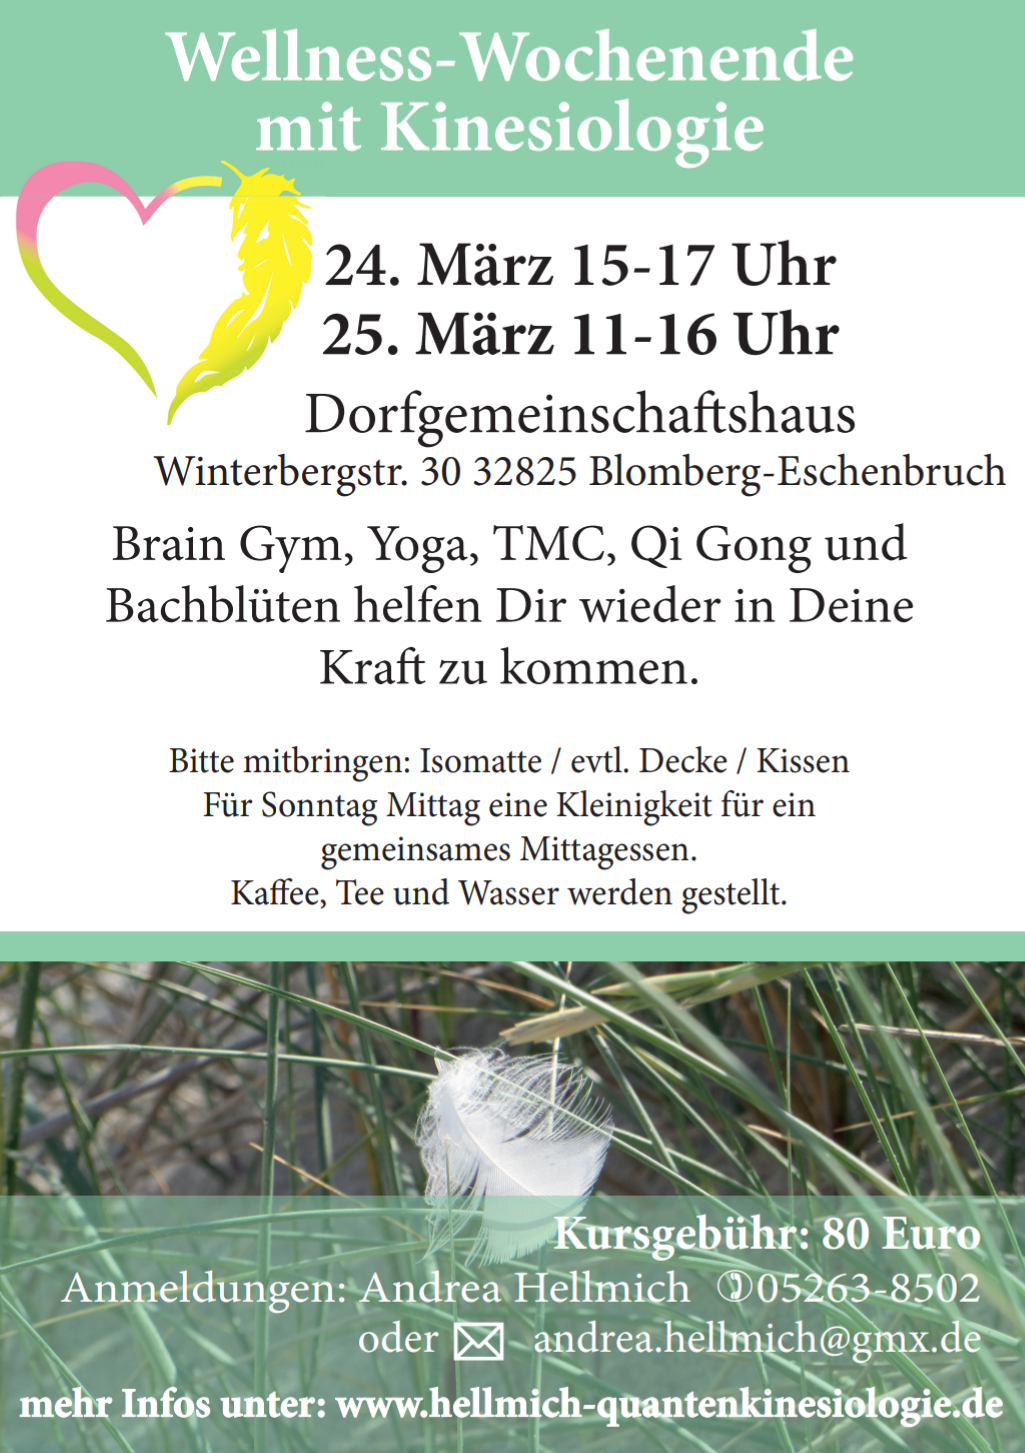 Flyer Wellness Wochenende